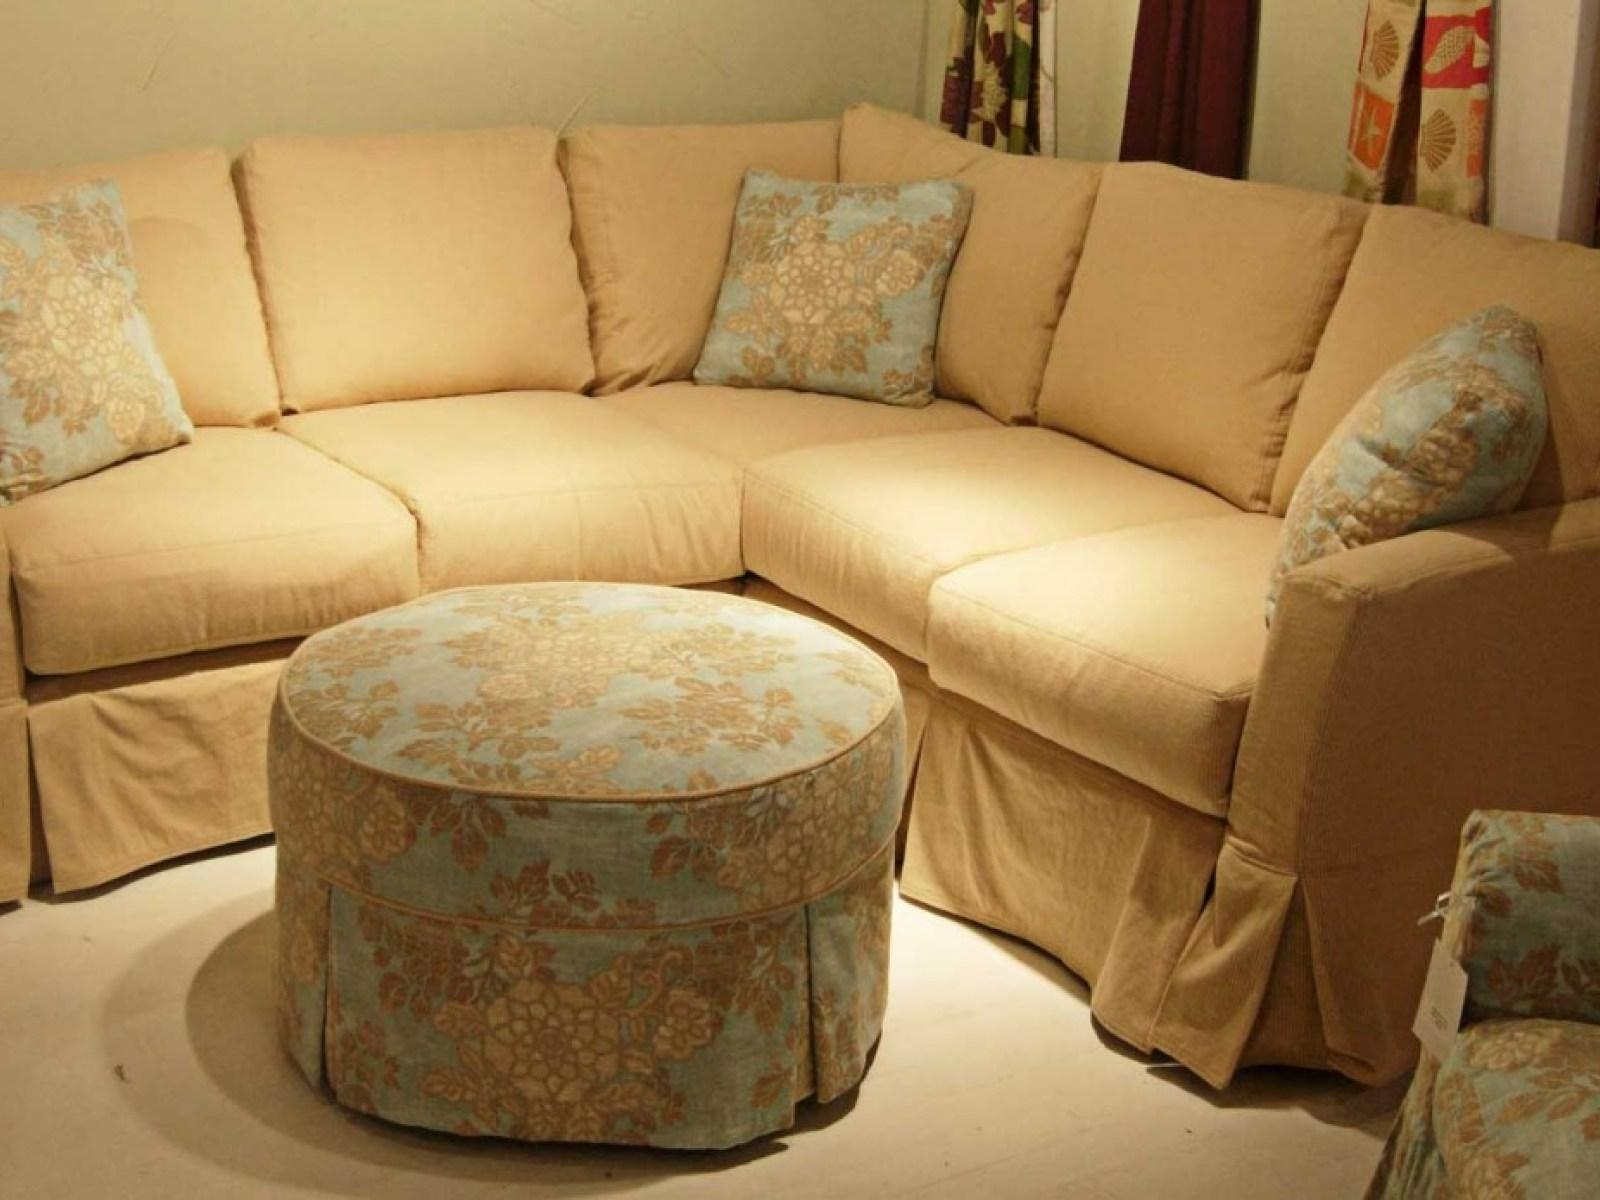 Sofa Ideas Slipcovers for Sectional Sofas With Recliners Explore